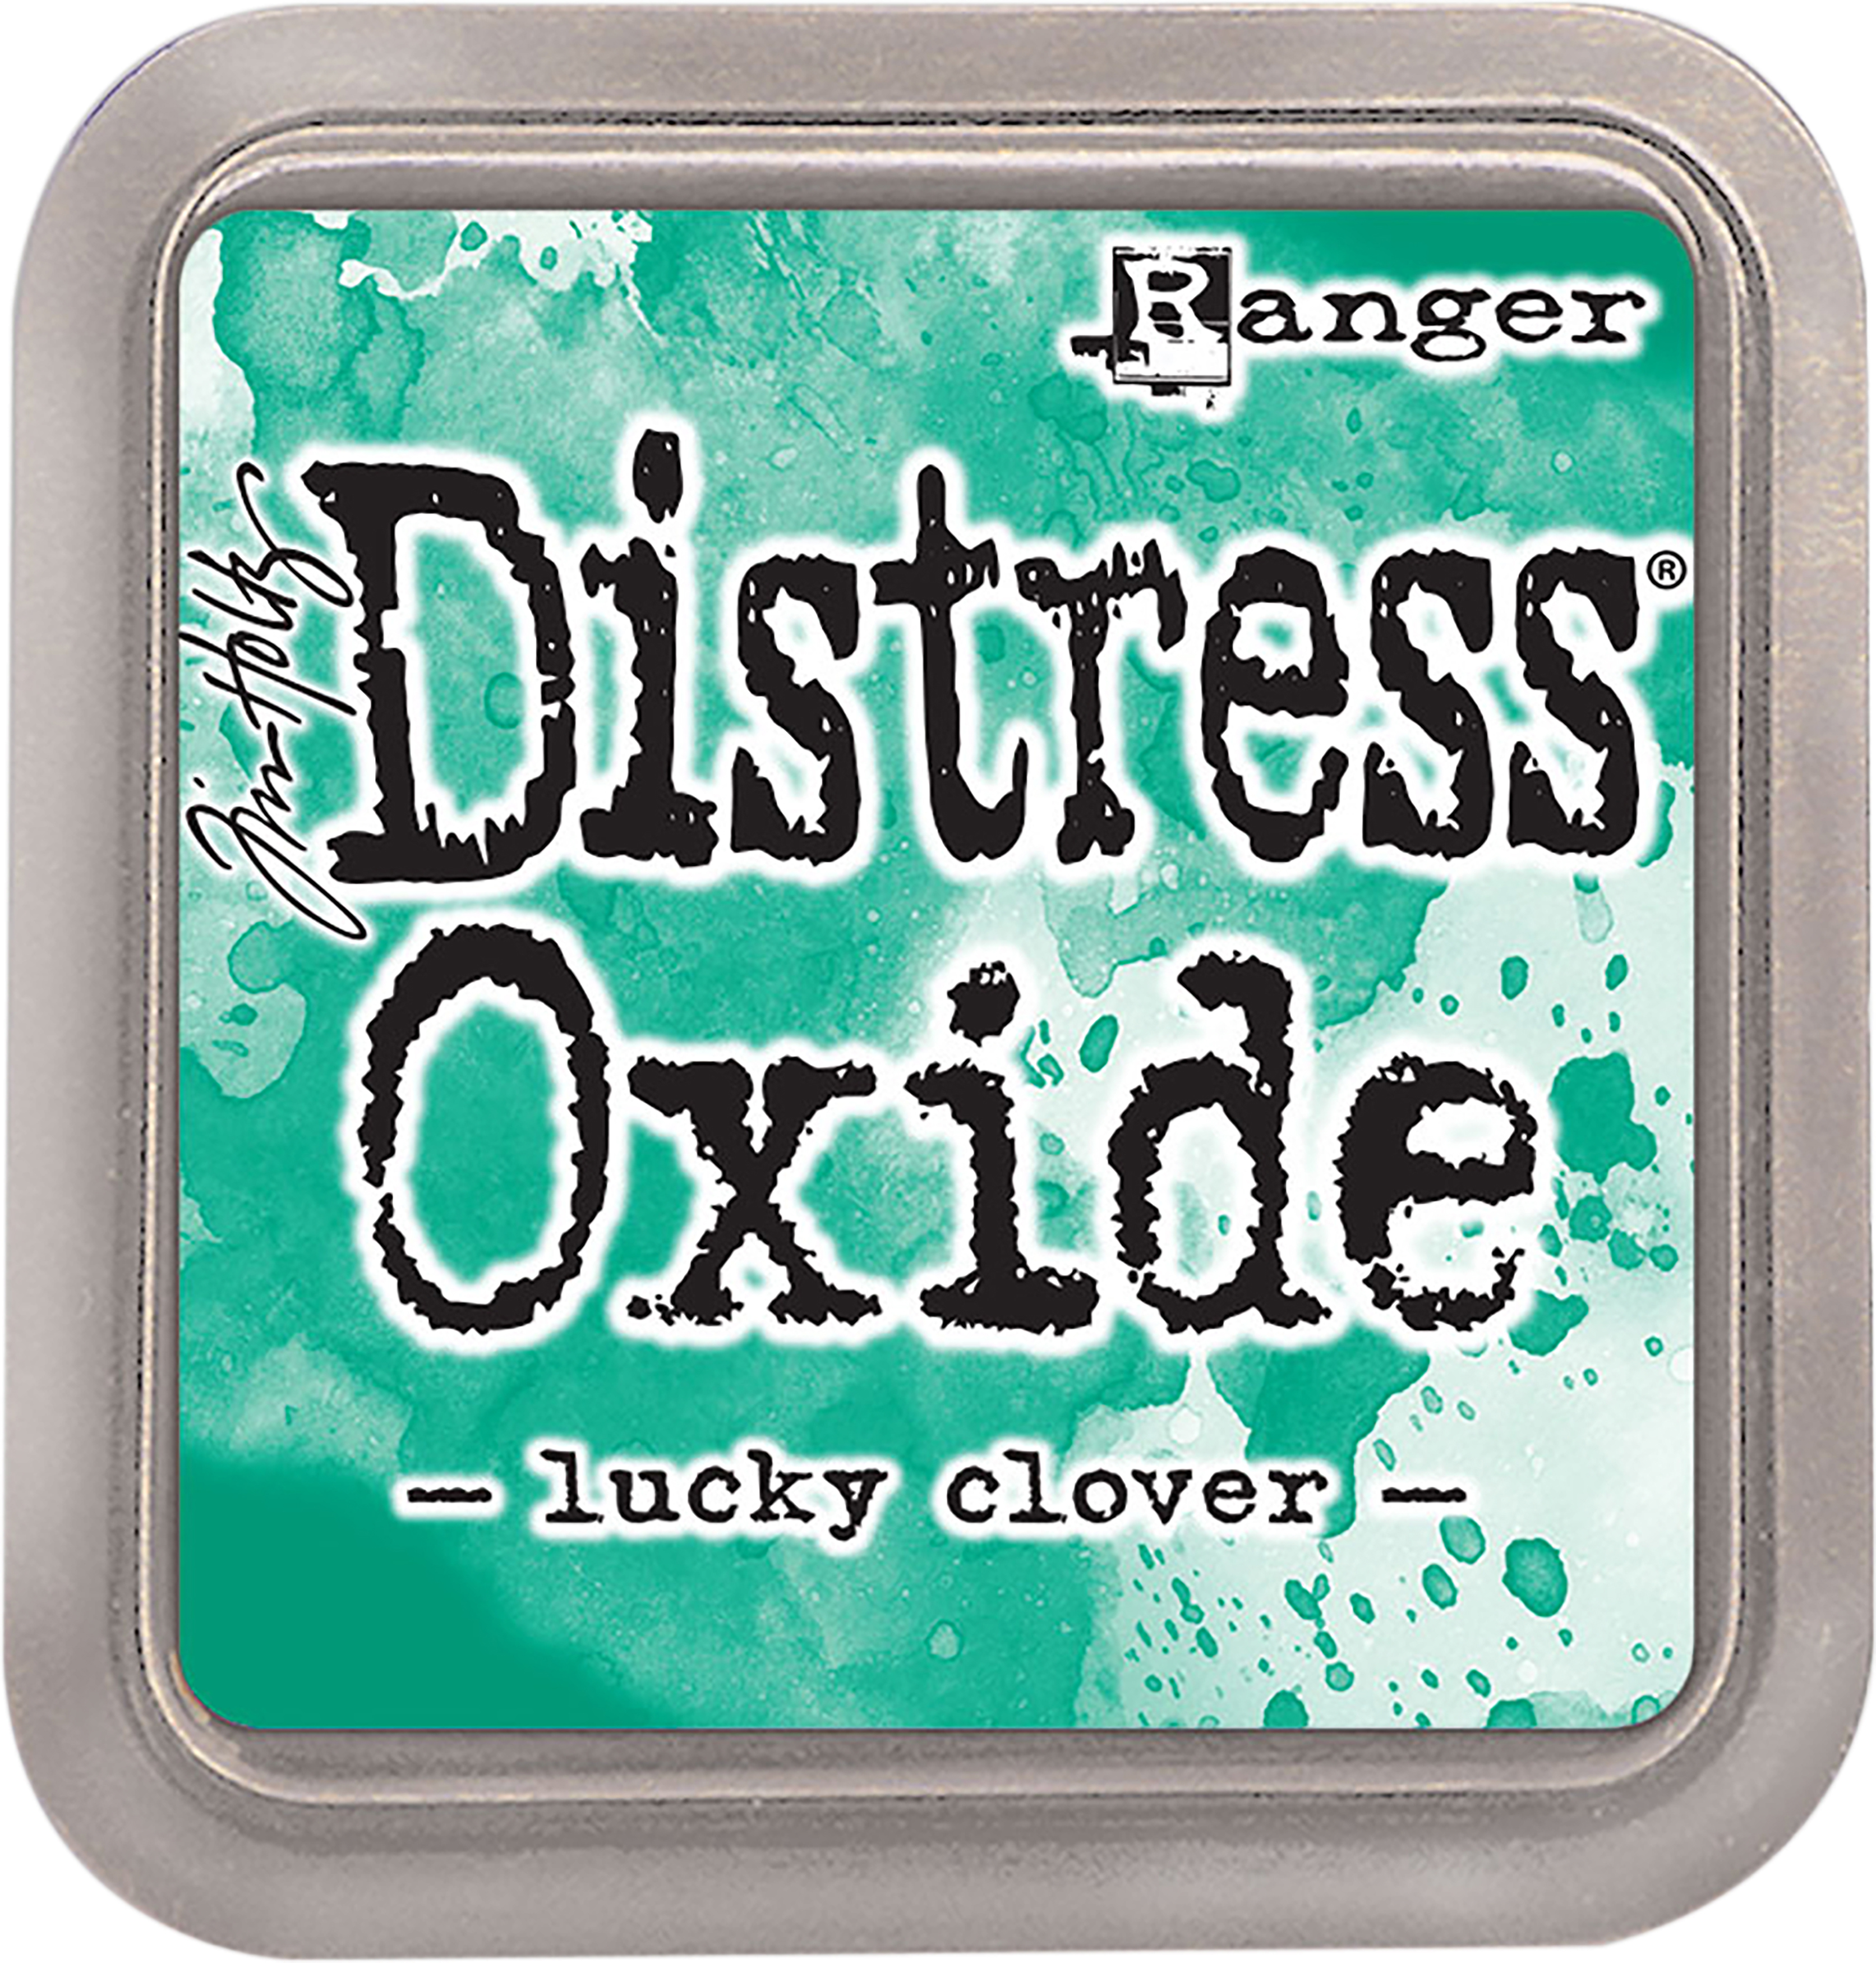 Tim Holtz Distress Oxides Ink Pad-Lucky Clover